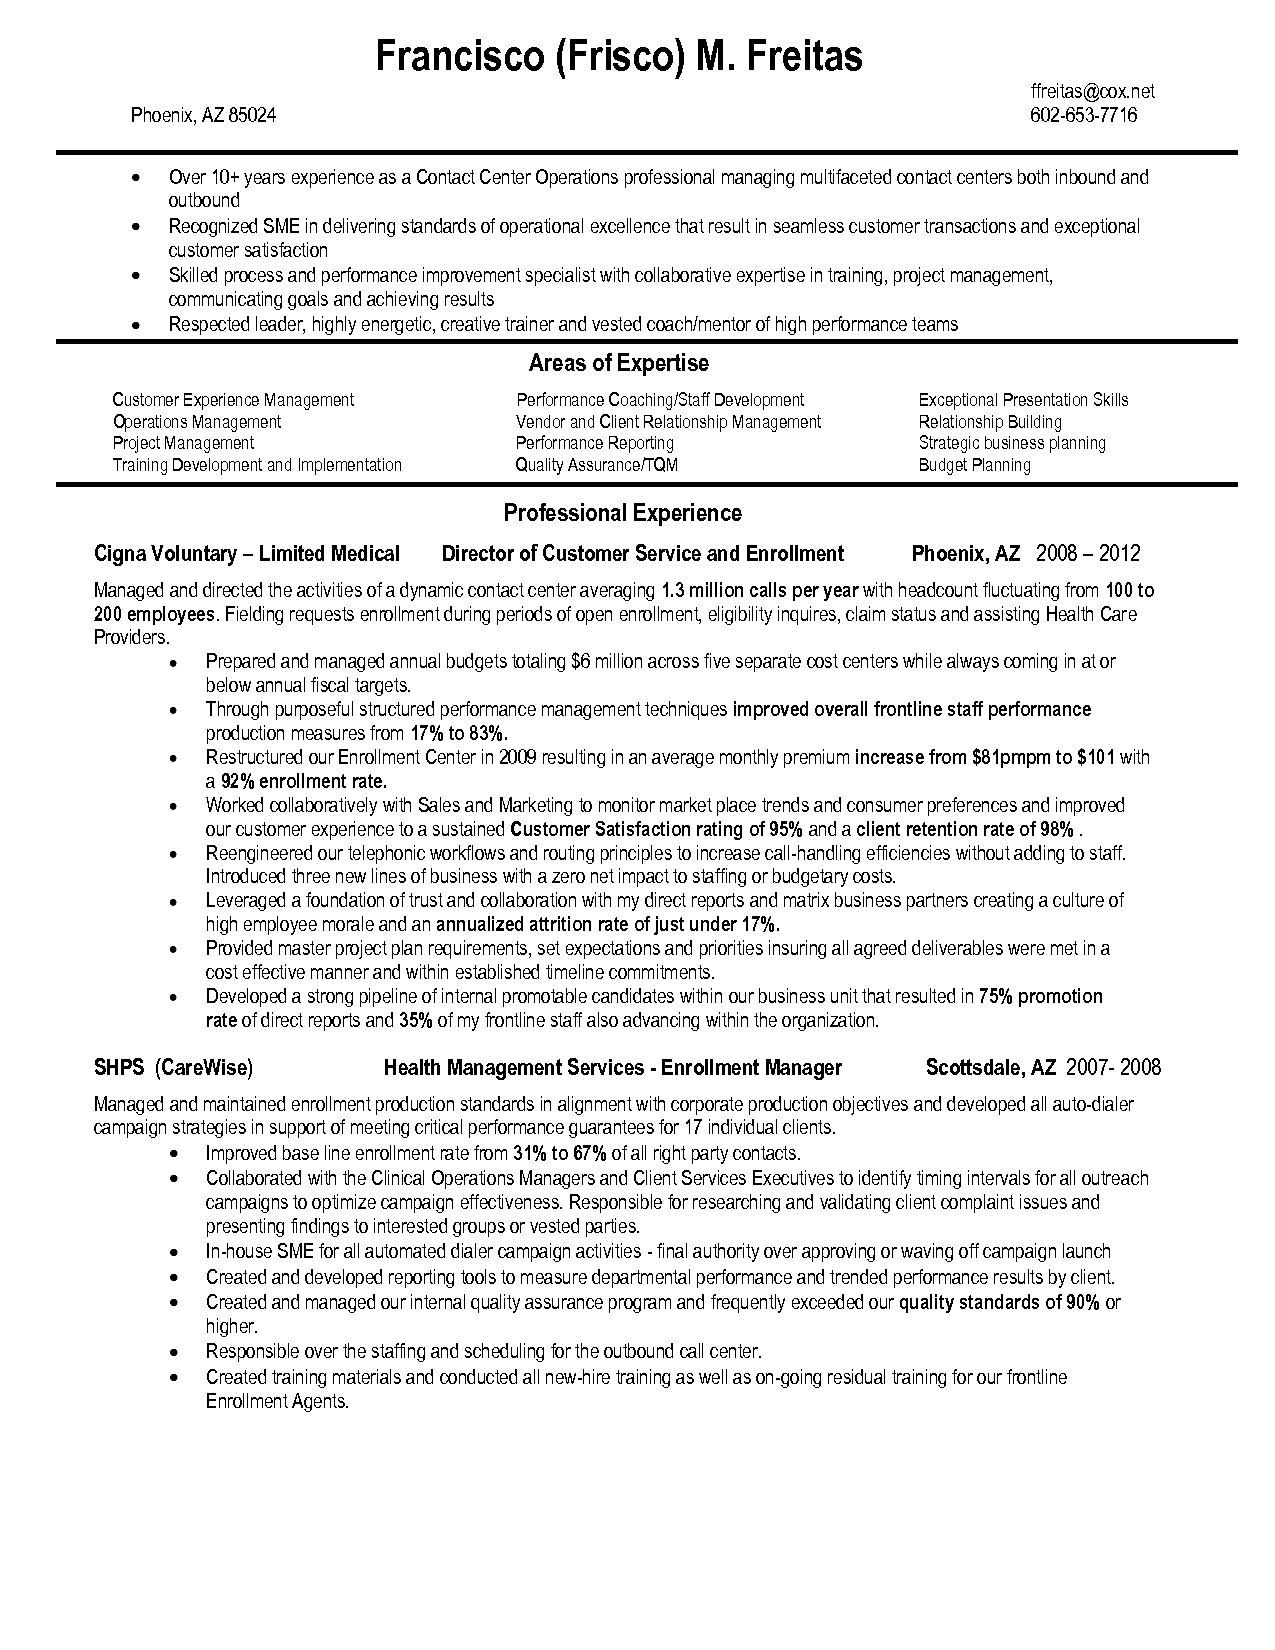 Insurance Claims Representative Resume Sample